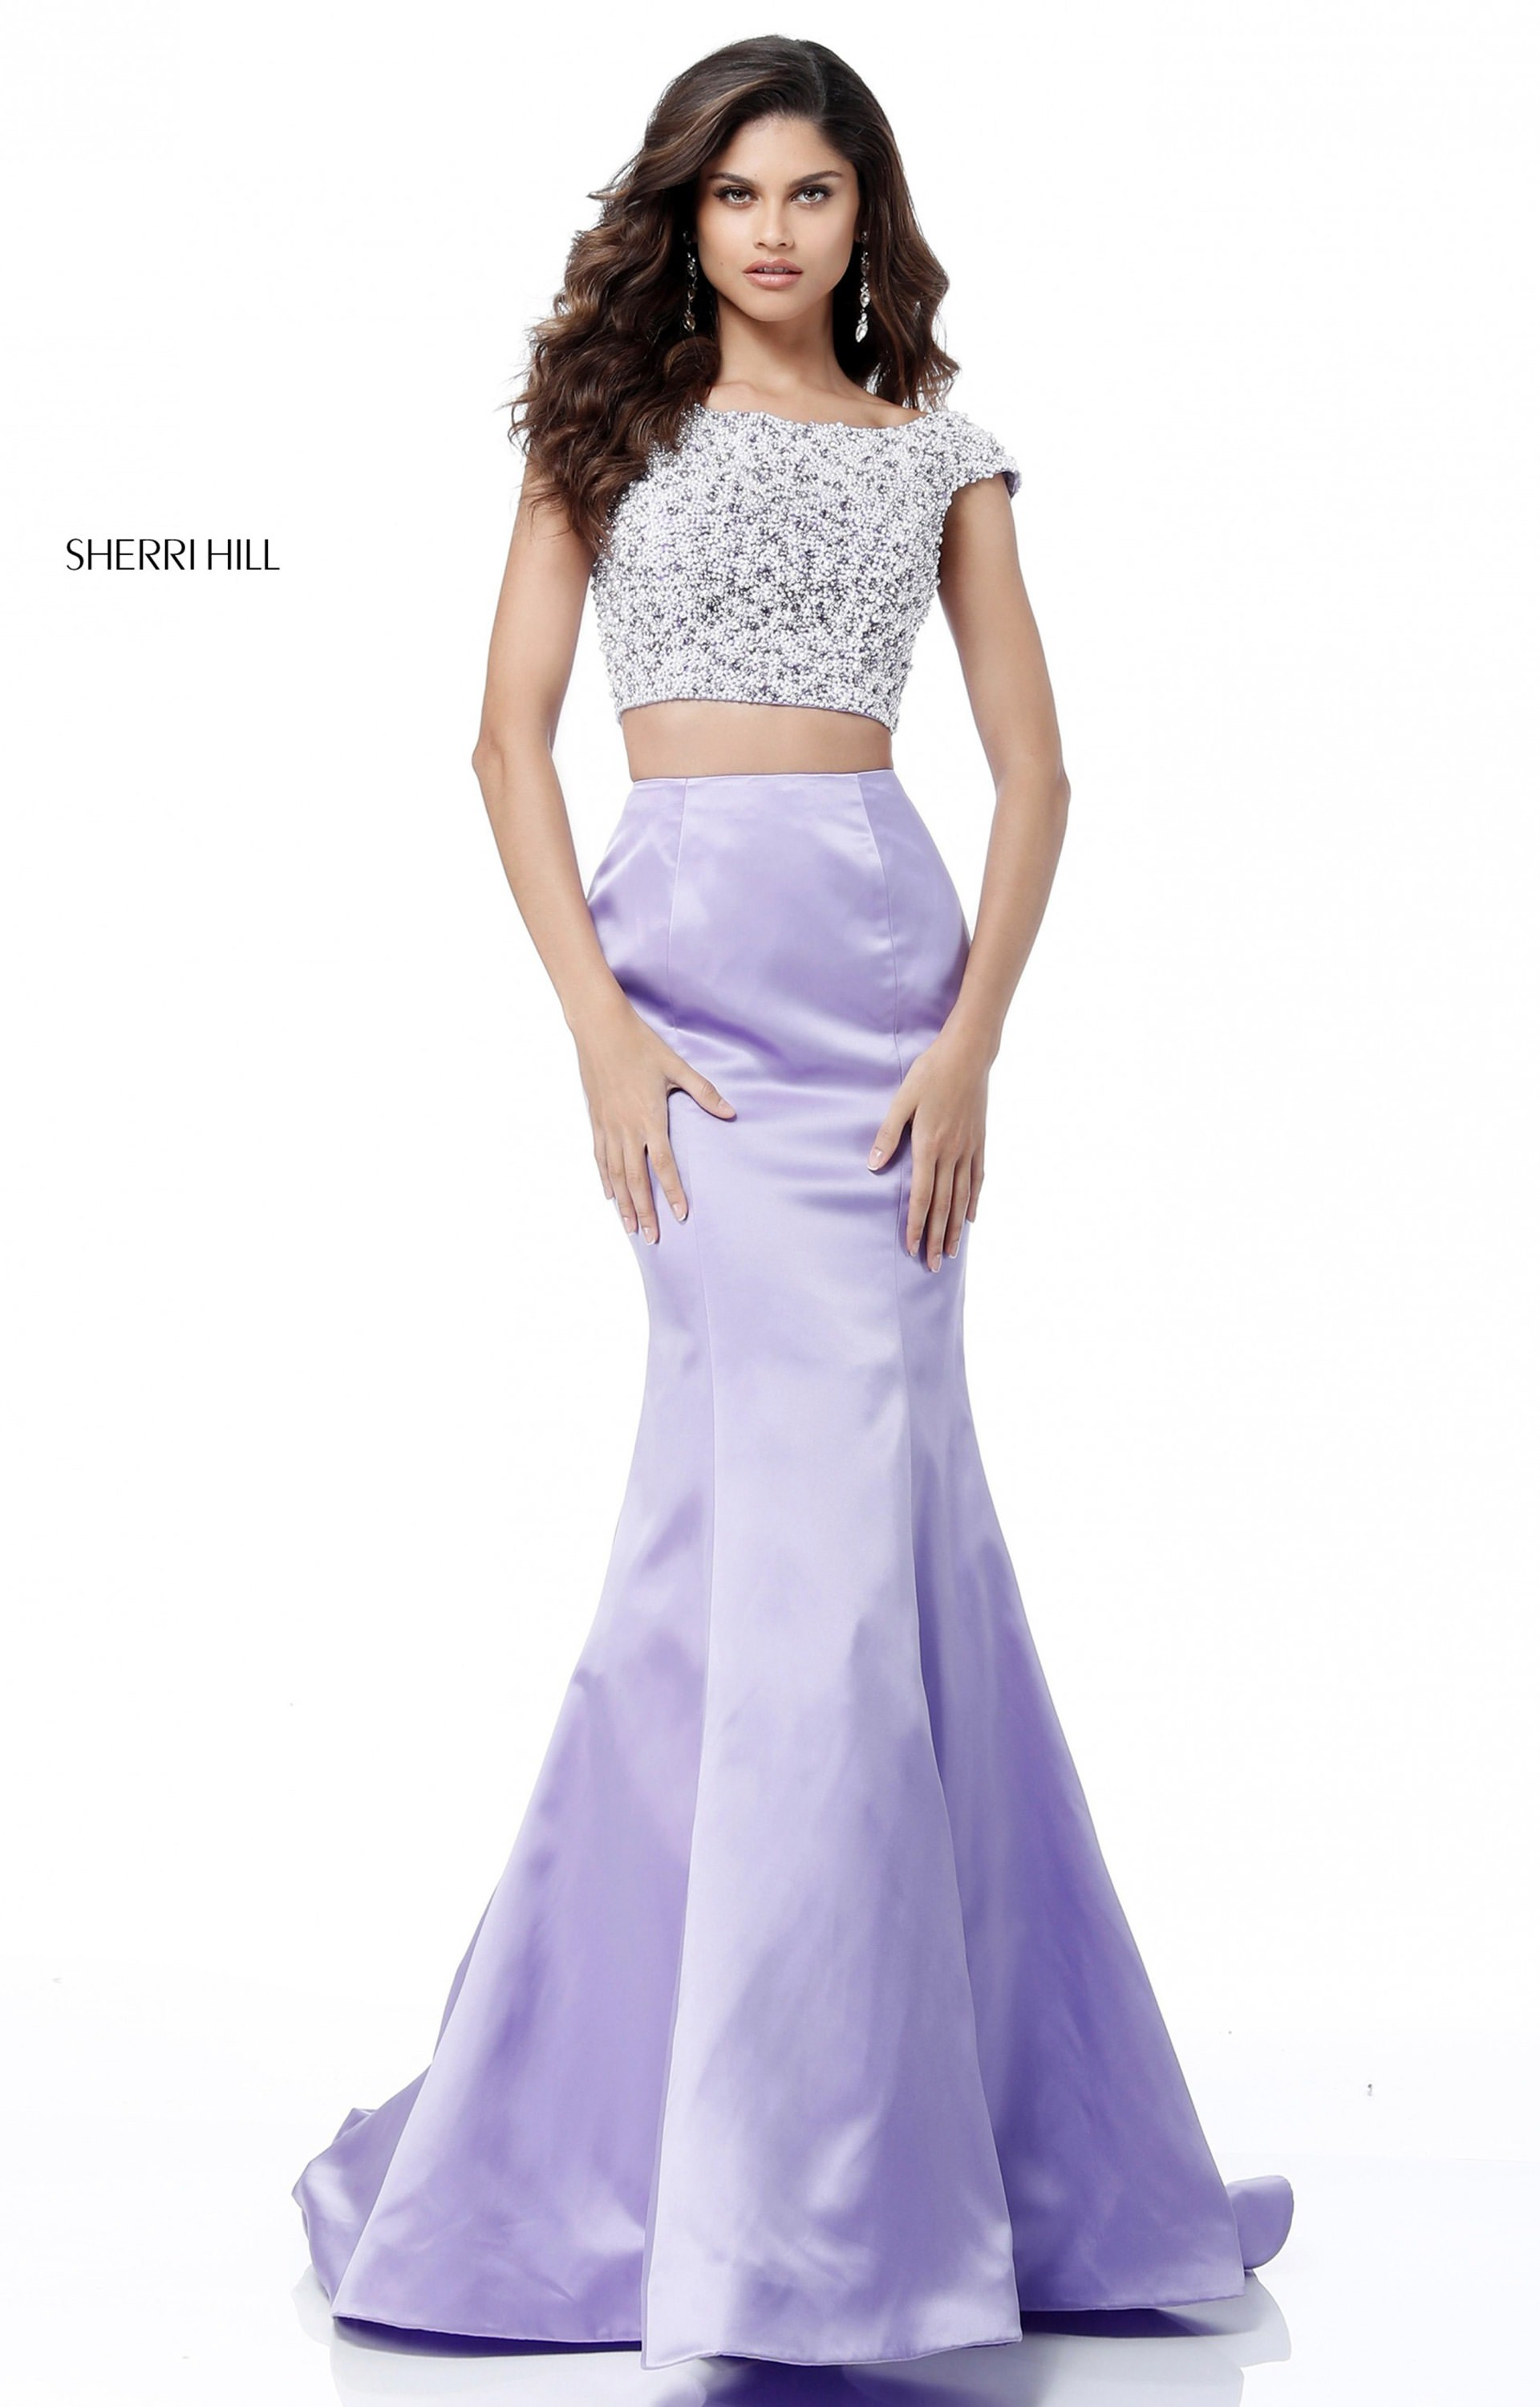 Sherri Hill 51715 Long 2 Piece Satin Mermaid Prom Dress